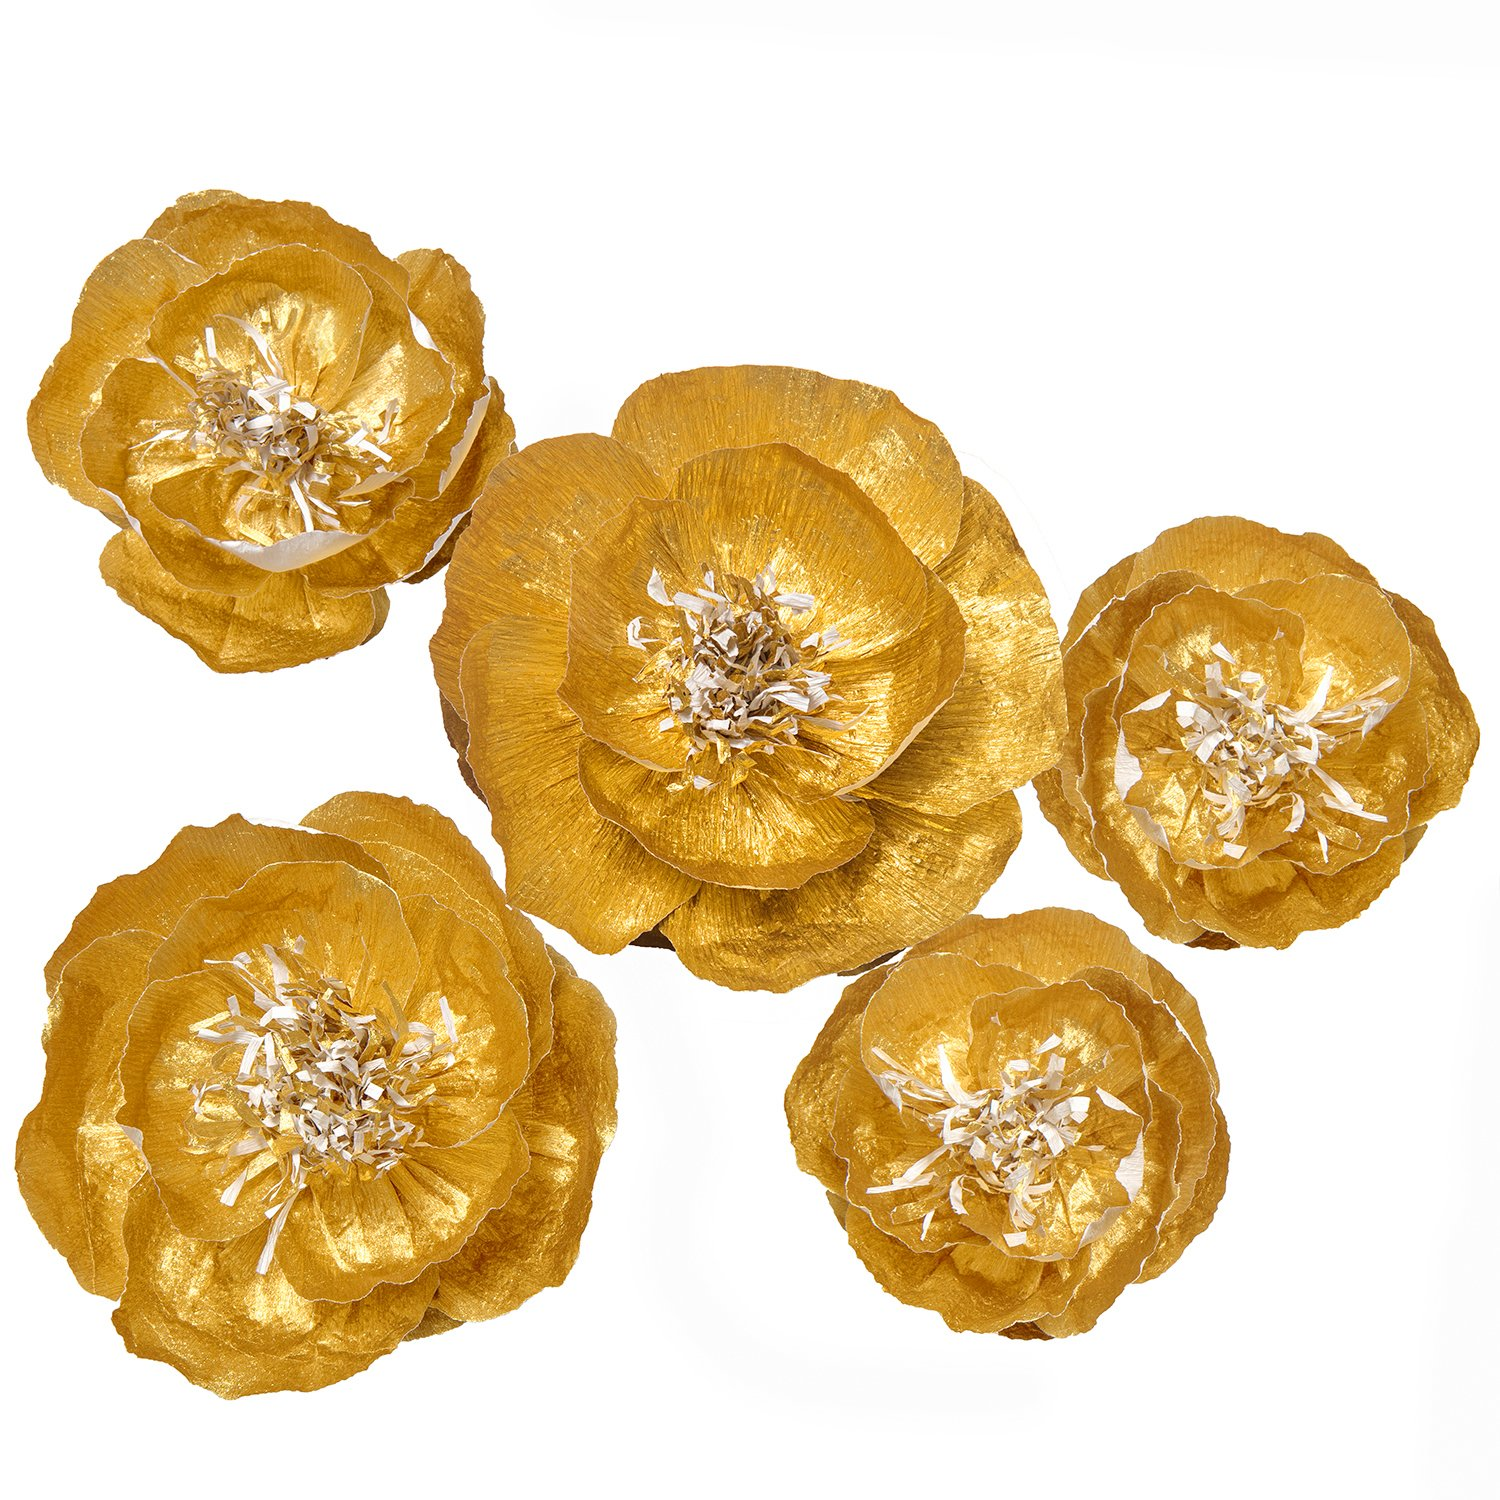 Ling's moment Large Paper Flower, 5 X Gold Flowers, Handcrafted Paper Flowers, Giant Crepe Paper Flowers, Paper Flower Decoration for Wedding Backdrop Nursery Gold Party Bridal Shower Archway Decor